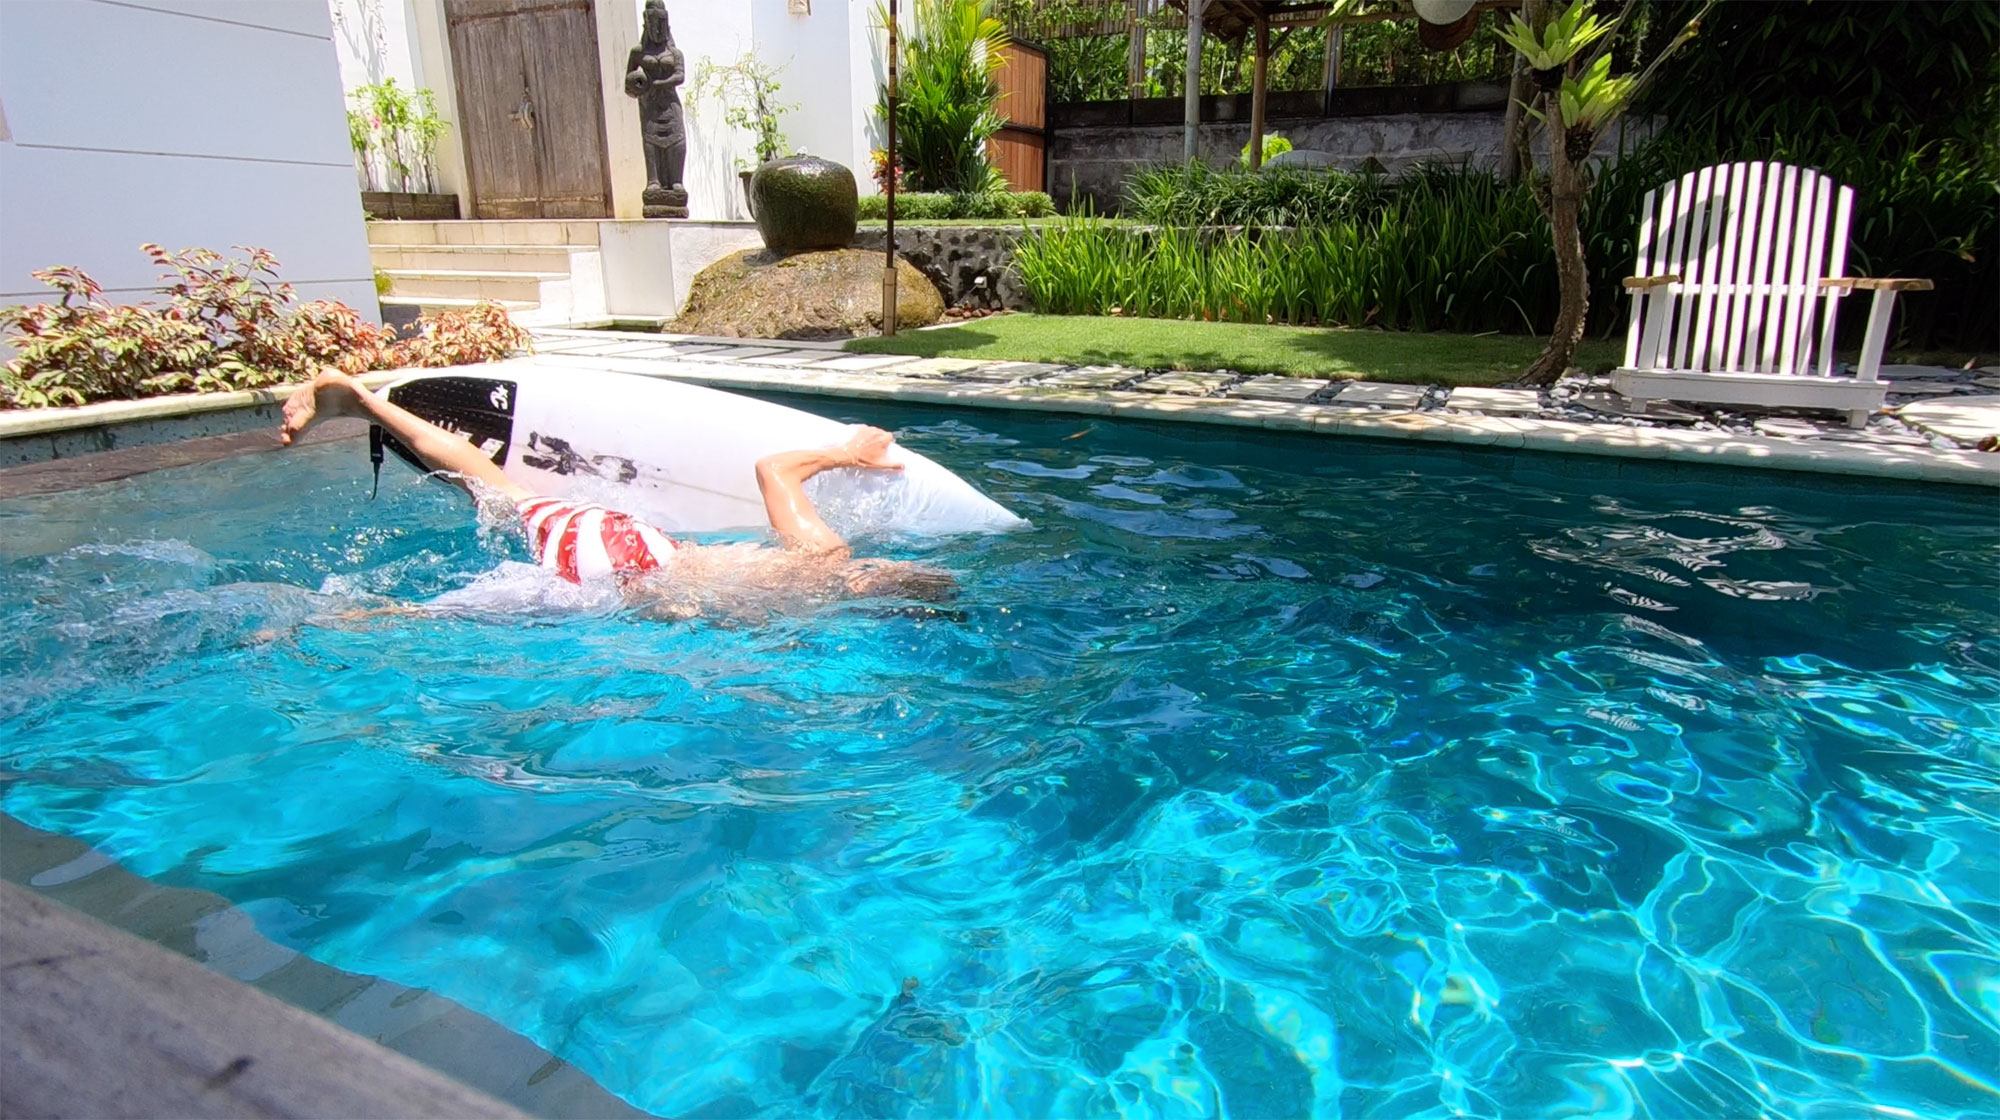 Duck dive in pool - Bali, Indonesia - Screw Them All - Blog